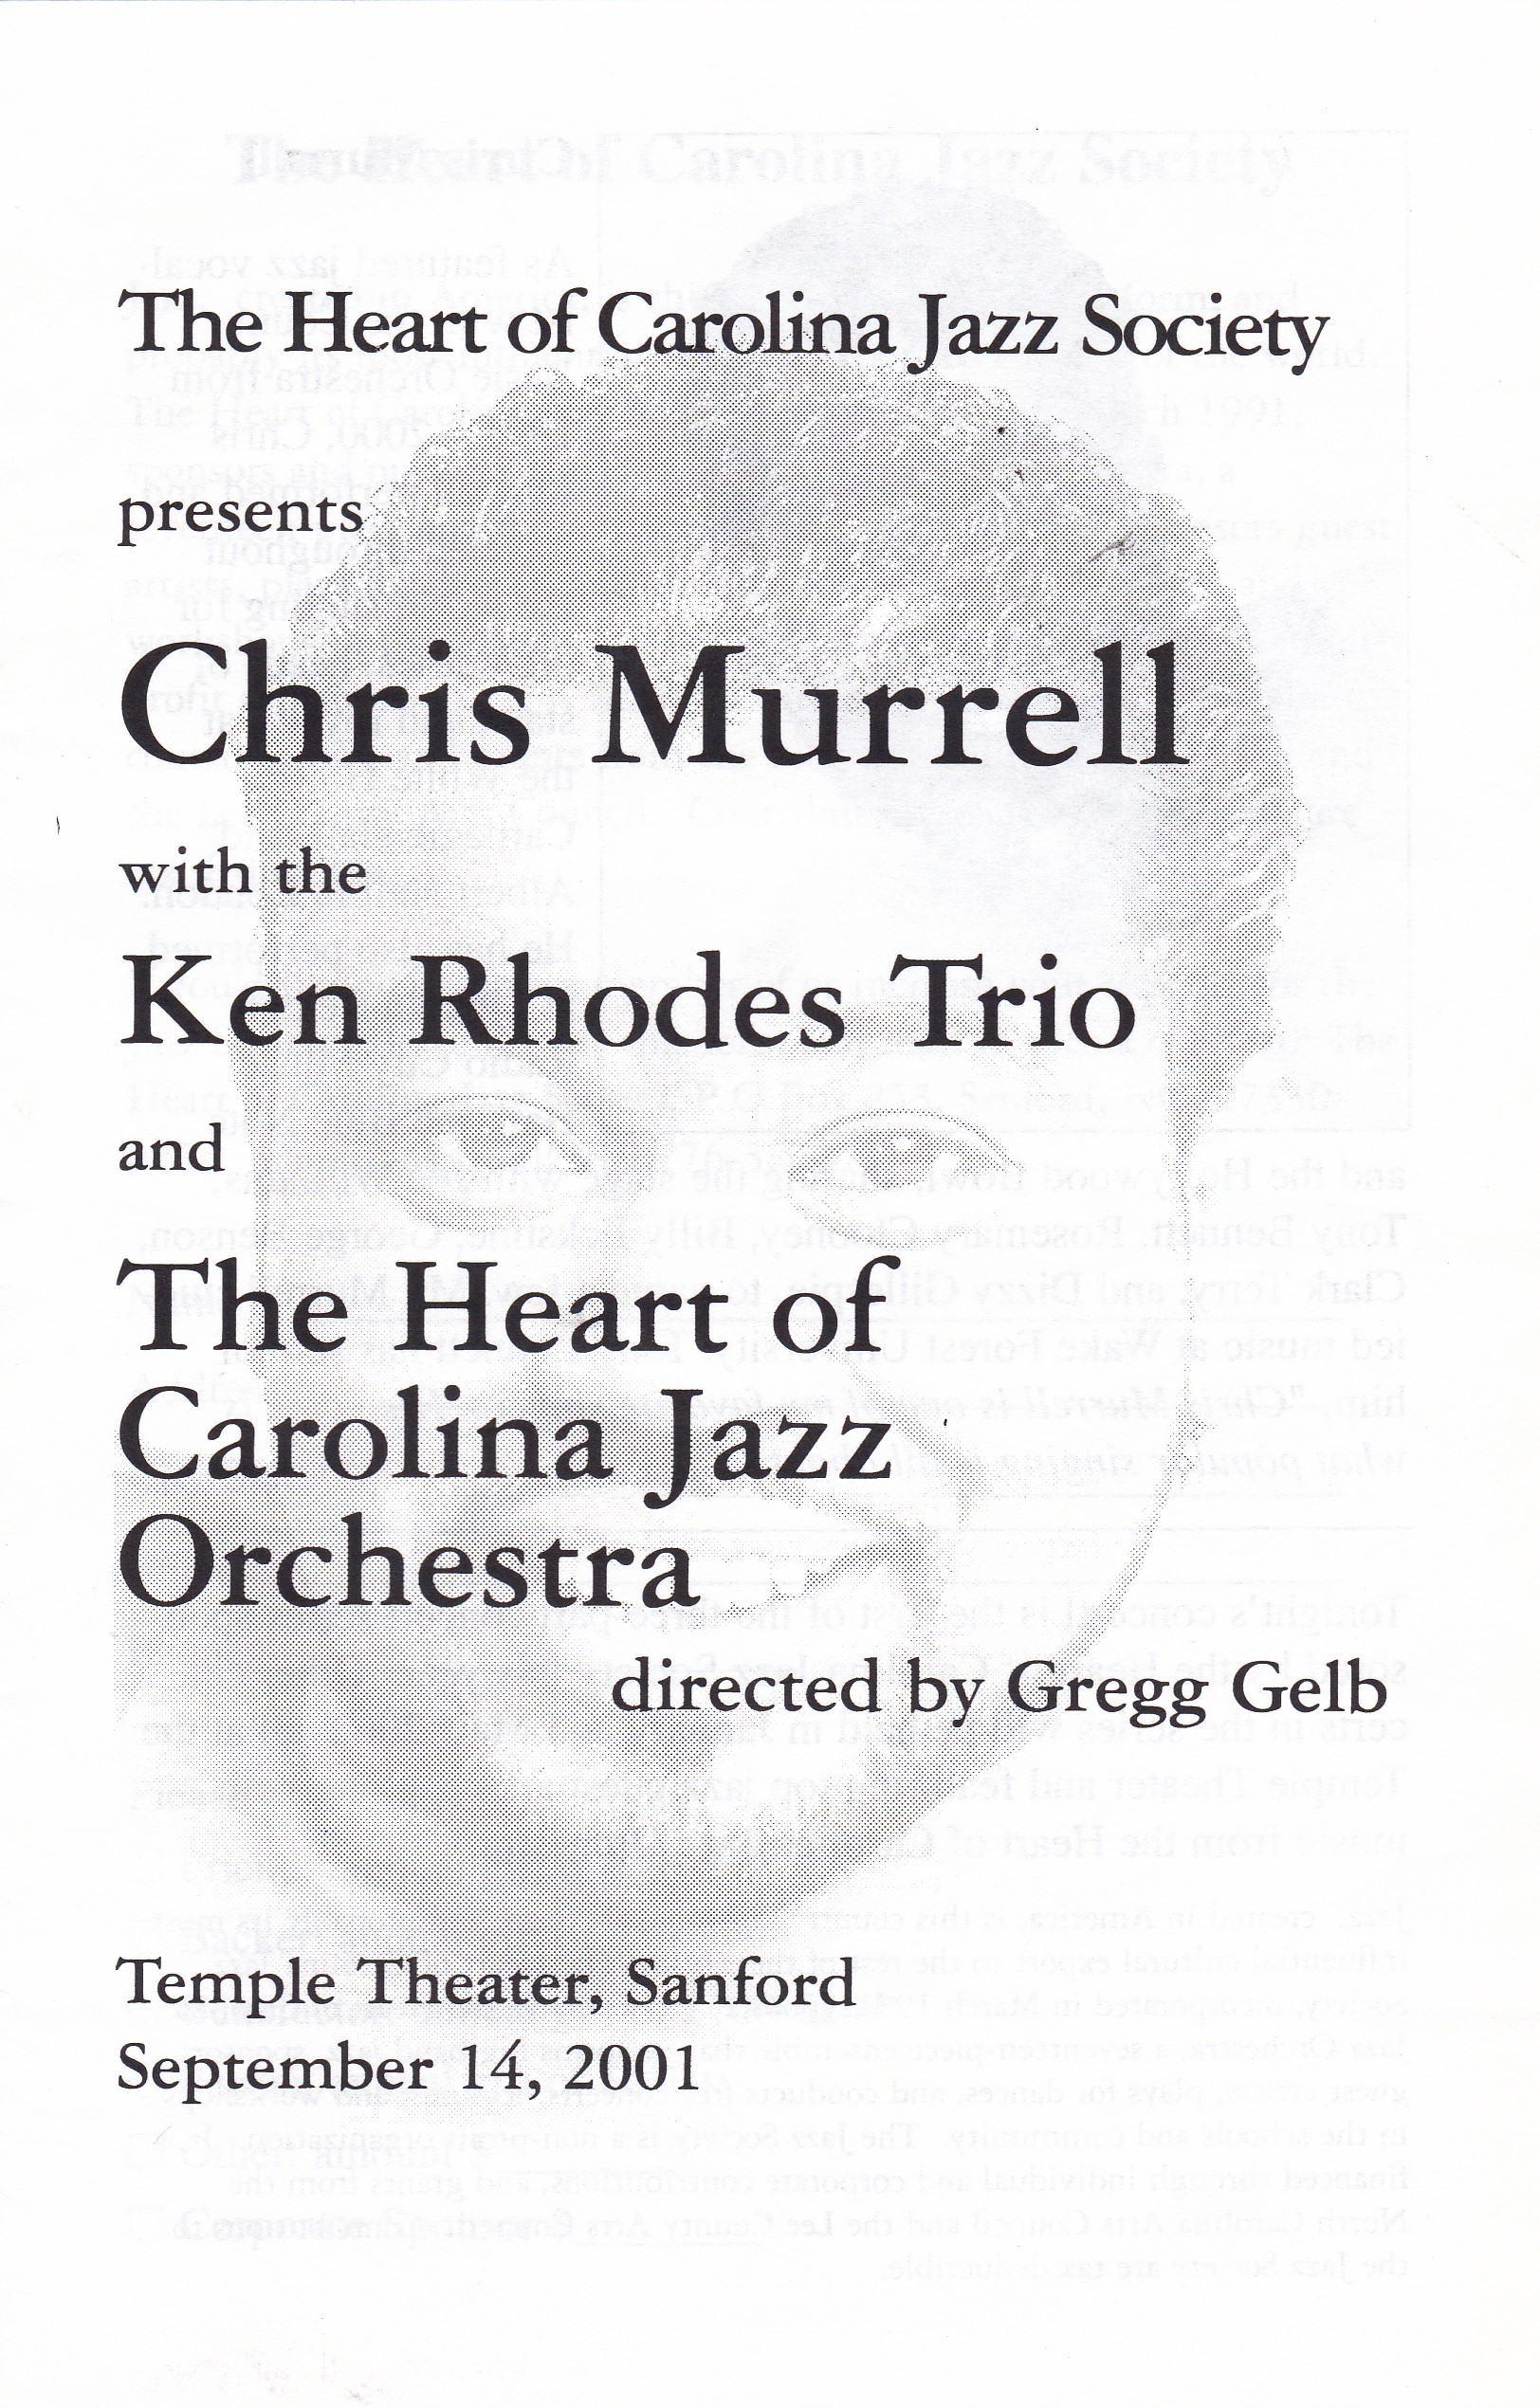 HOCJO-Guest-artist-Chris-Murrell-program